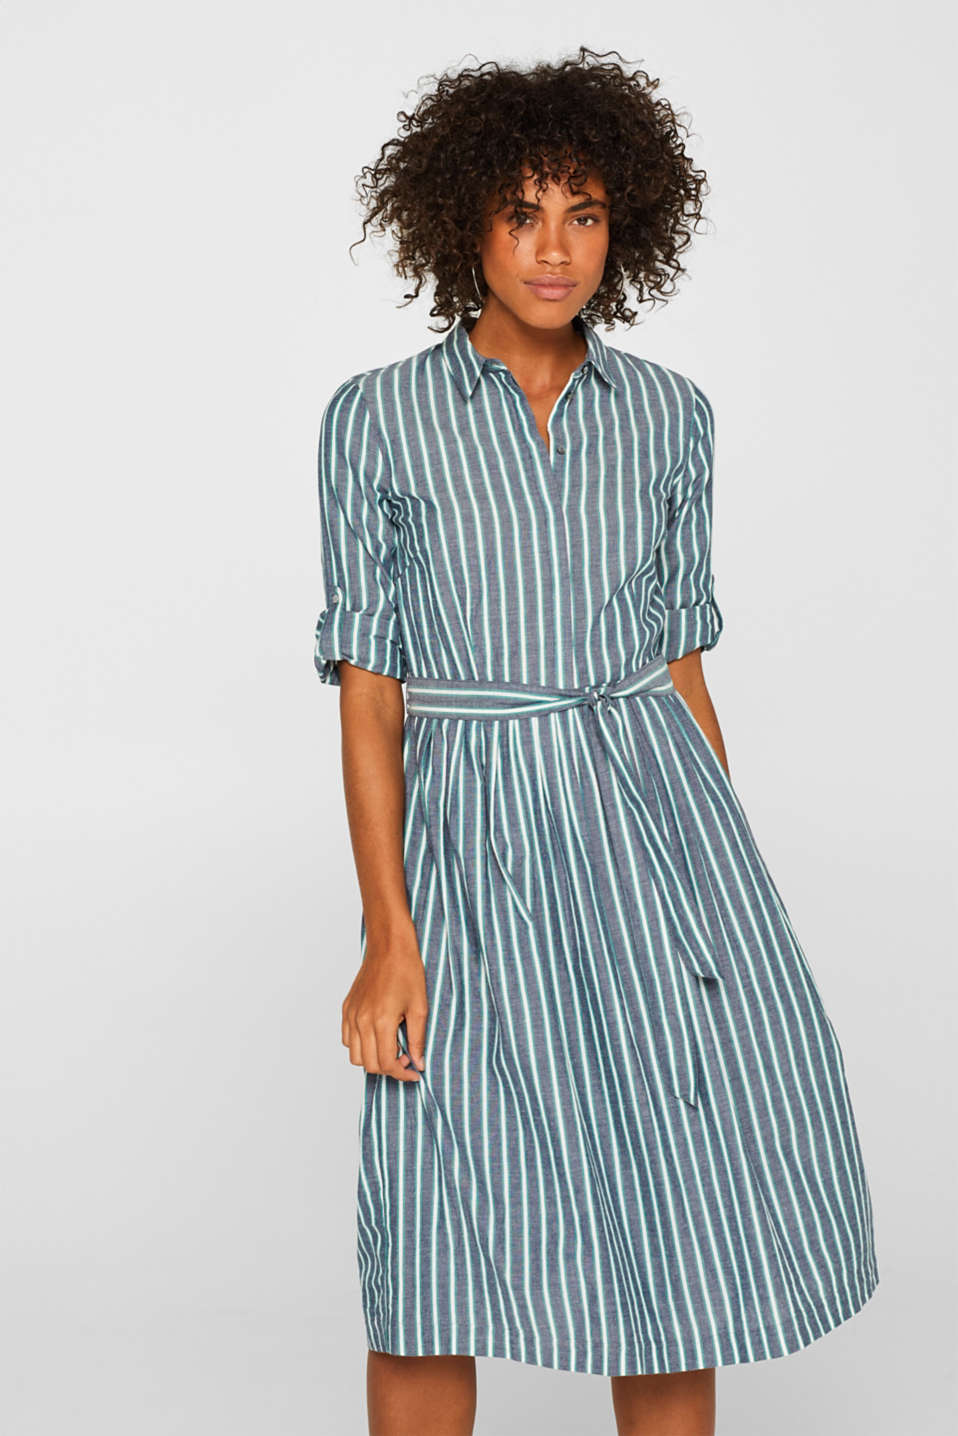 Esprit - Striped shirt dress in 100% cotton